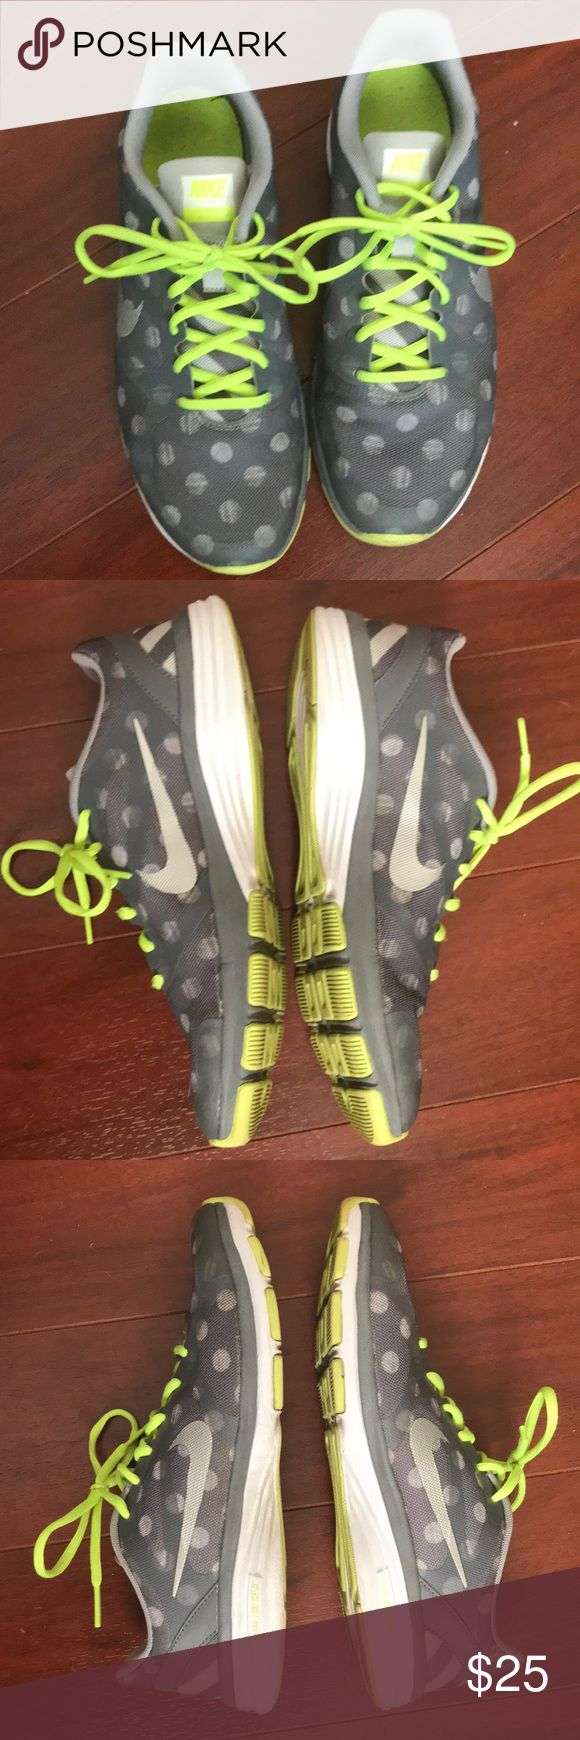 Nike Dual Fusion TR Polka Dot Sneakers Size 8.5 Great running shoes from Nike. Size 8.5. There are some signs of use, such as normal wear to soles and insoles, but there is still a lot of life left in these. Gray polka dot pattern with neon green acccents. Nike Shoes Athletic Shoes